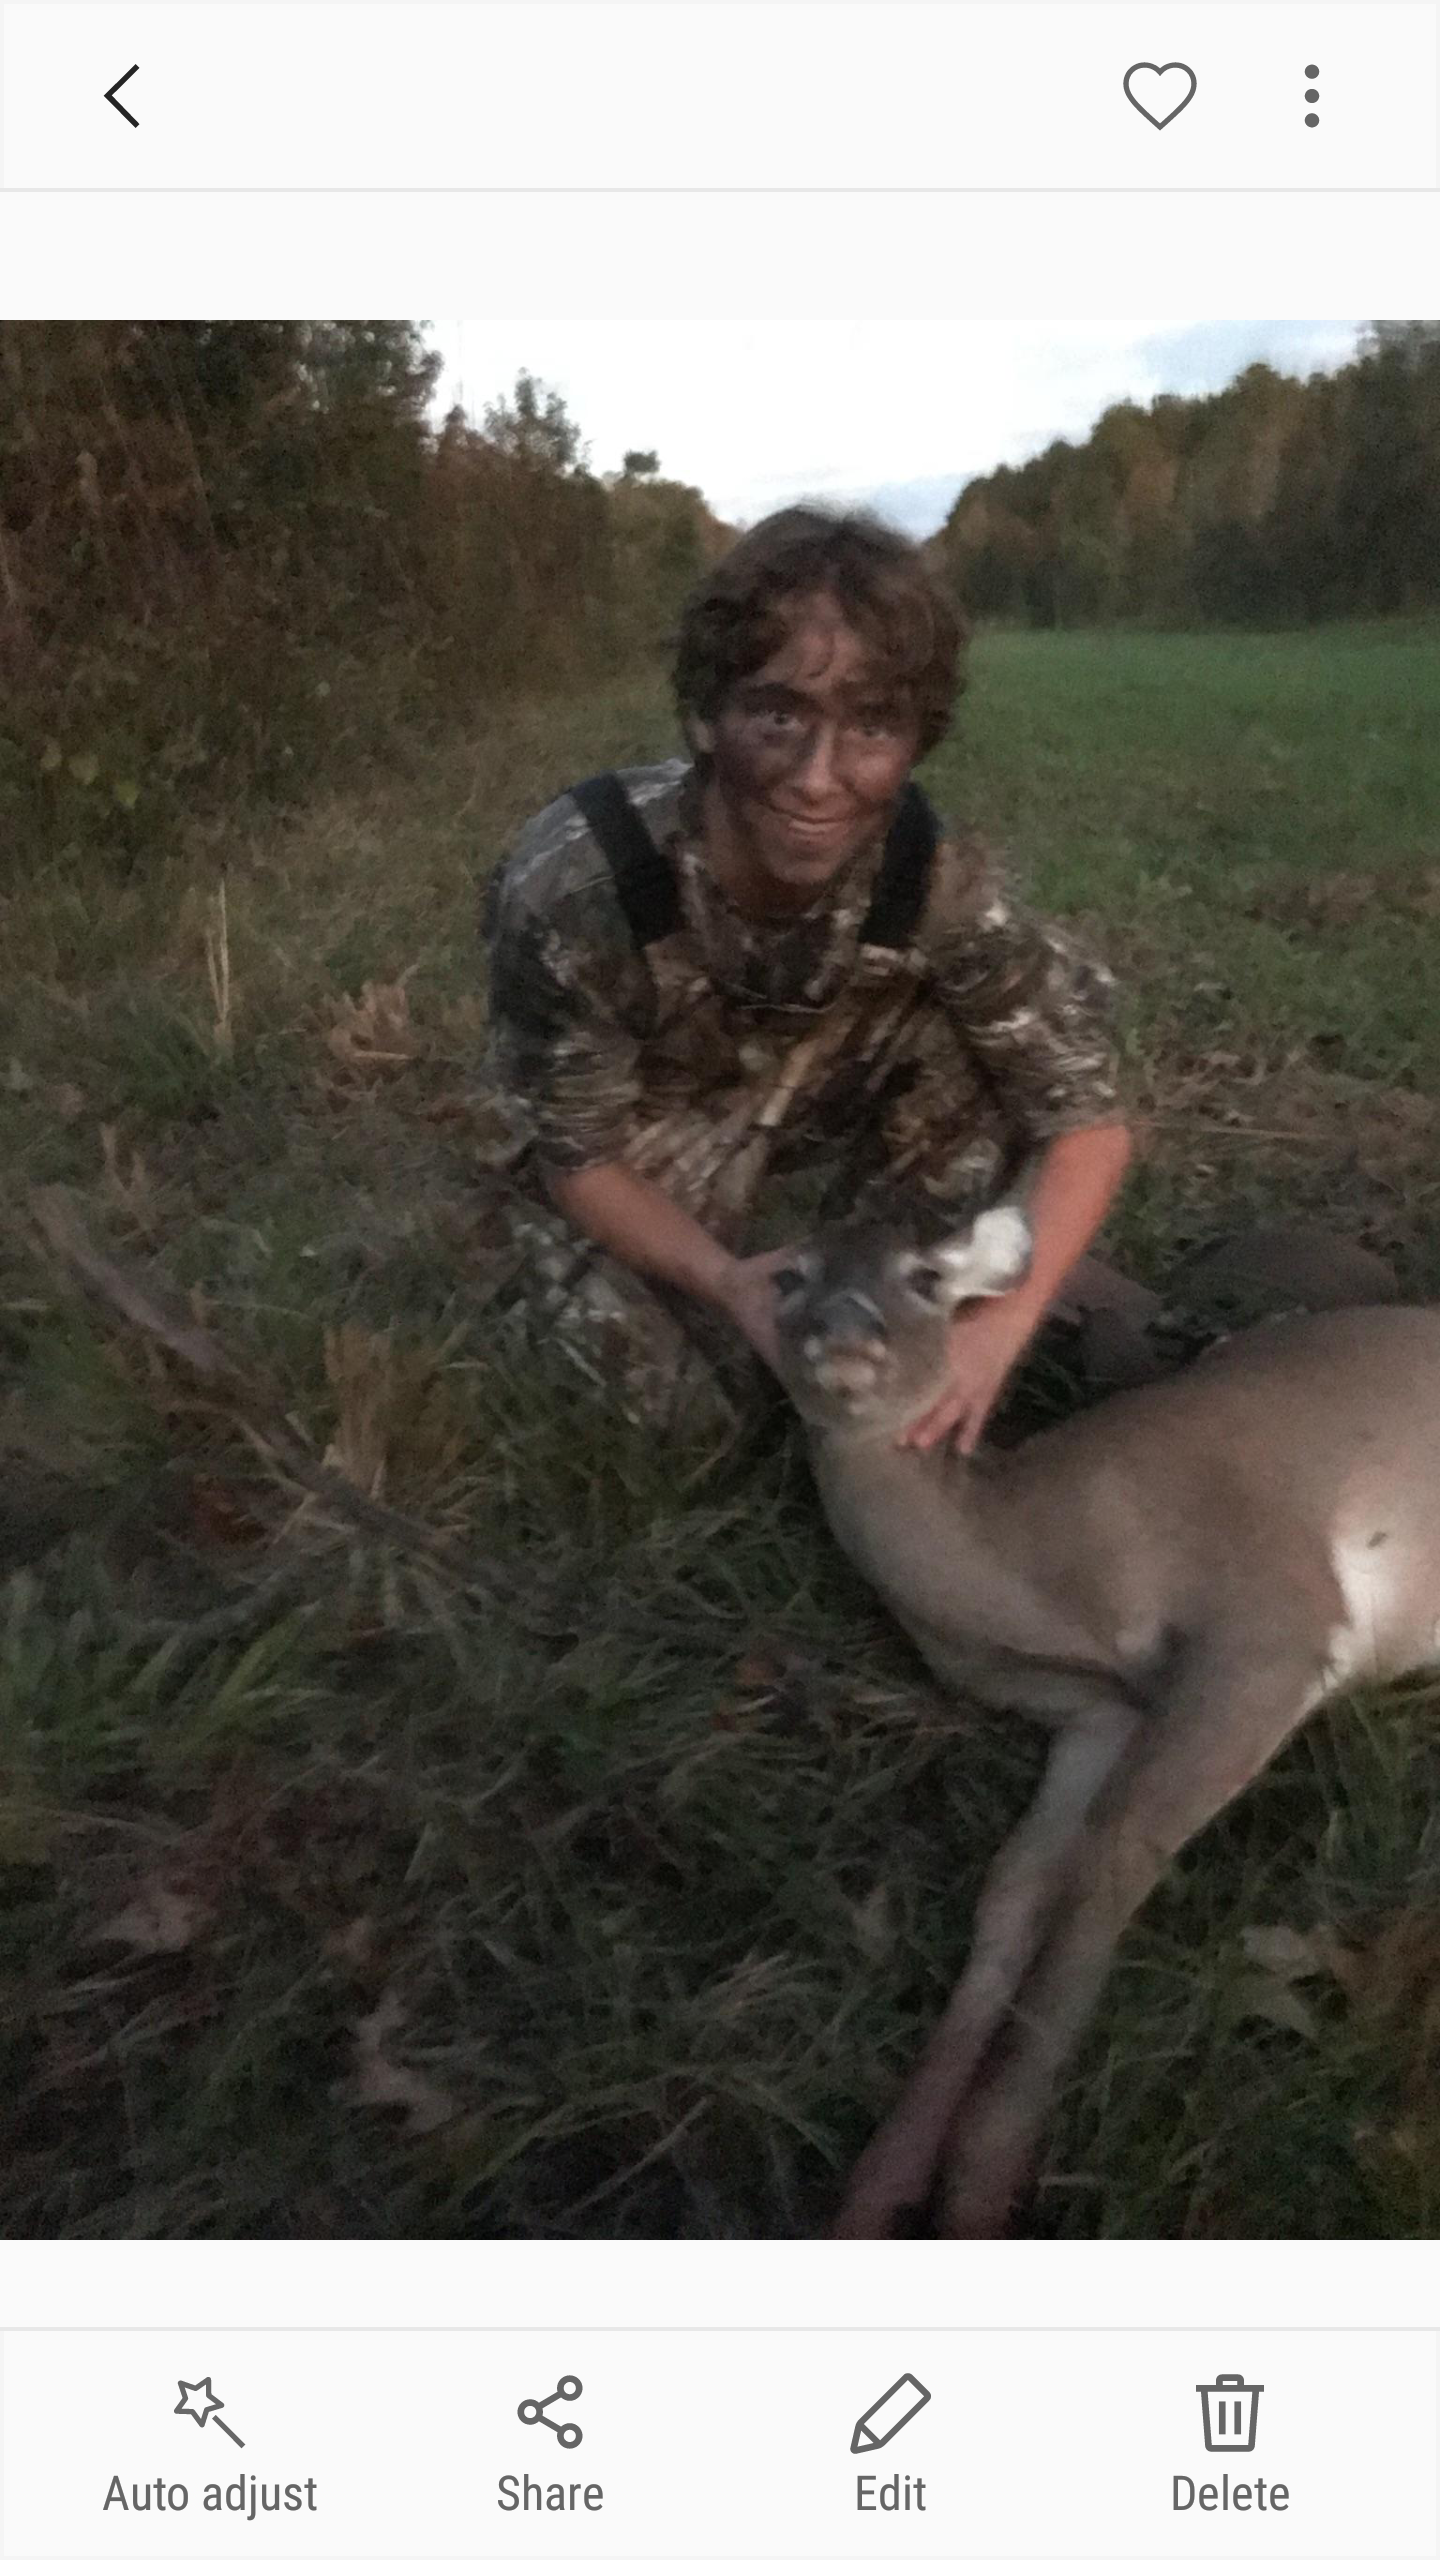 Gold Star - Woods w Deer he Shot.png